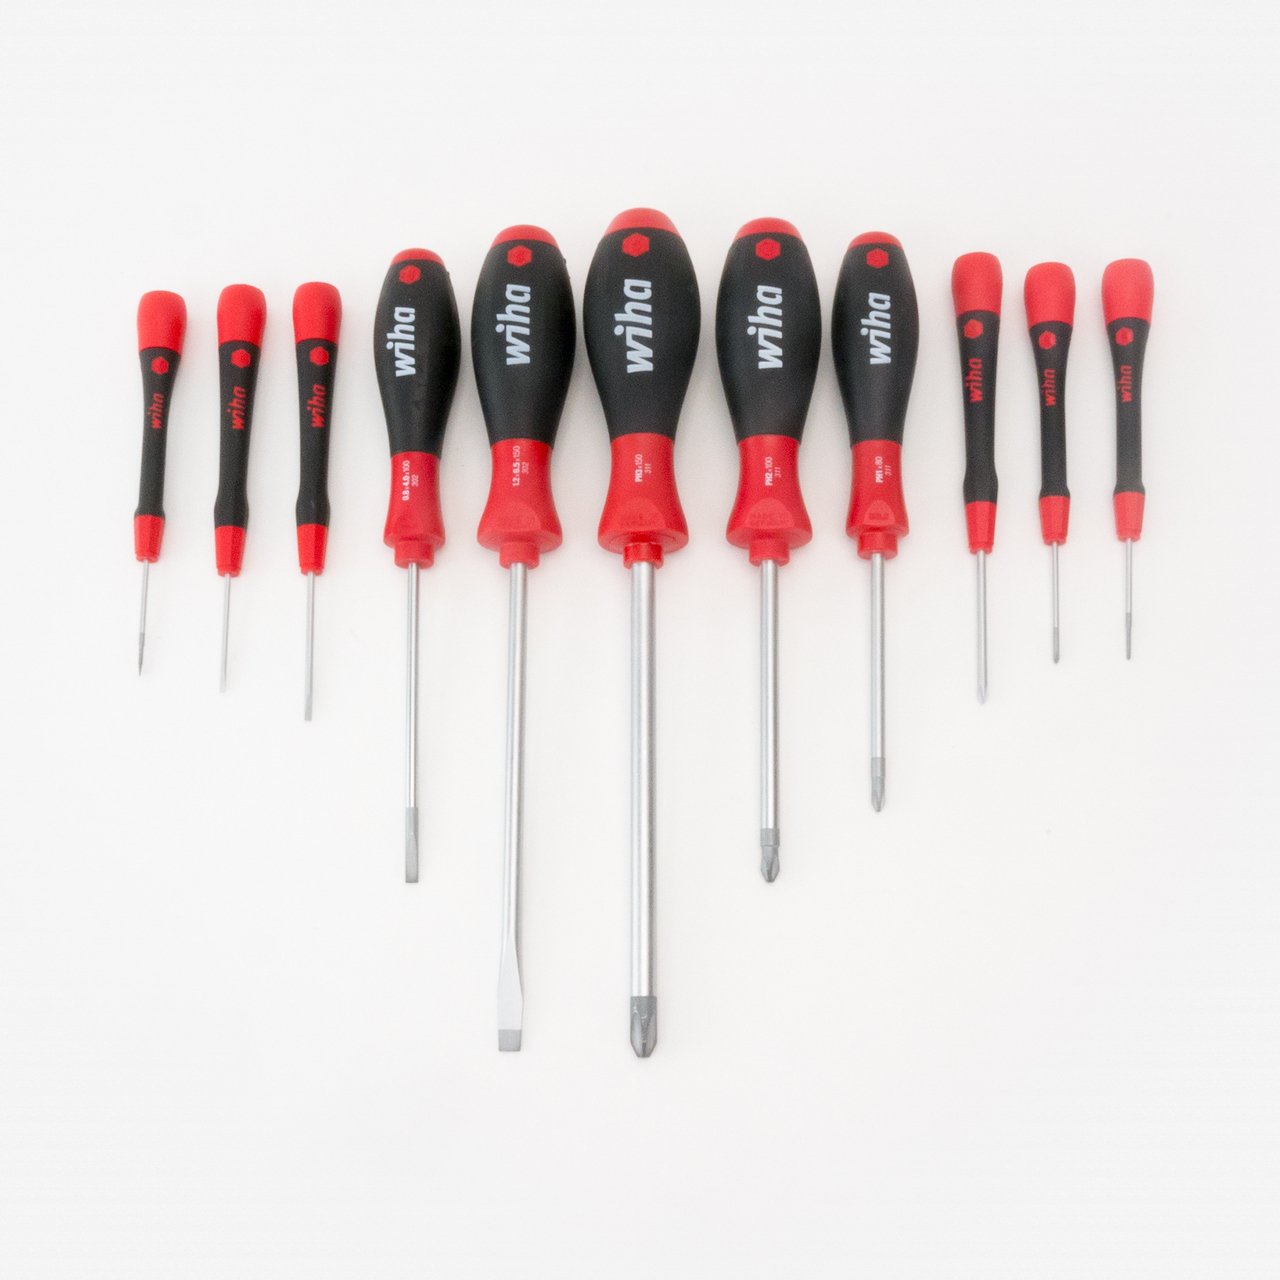 Wiha 30293 Master Phillips/Slotted Screwdriver Set, 11 Pieces - KC Tool